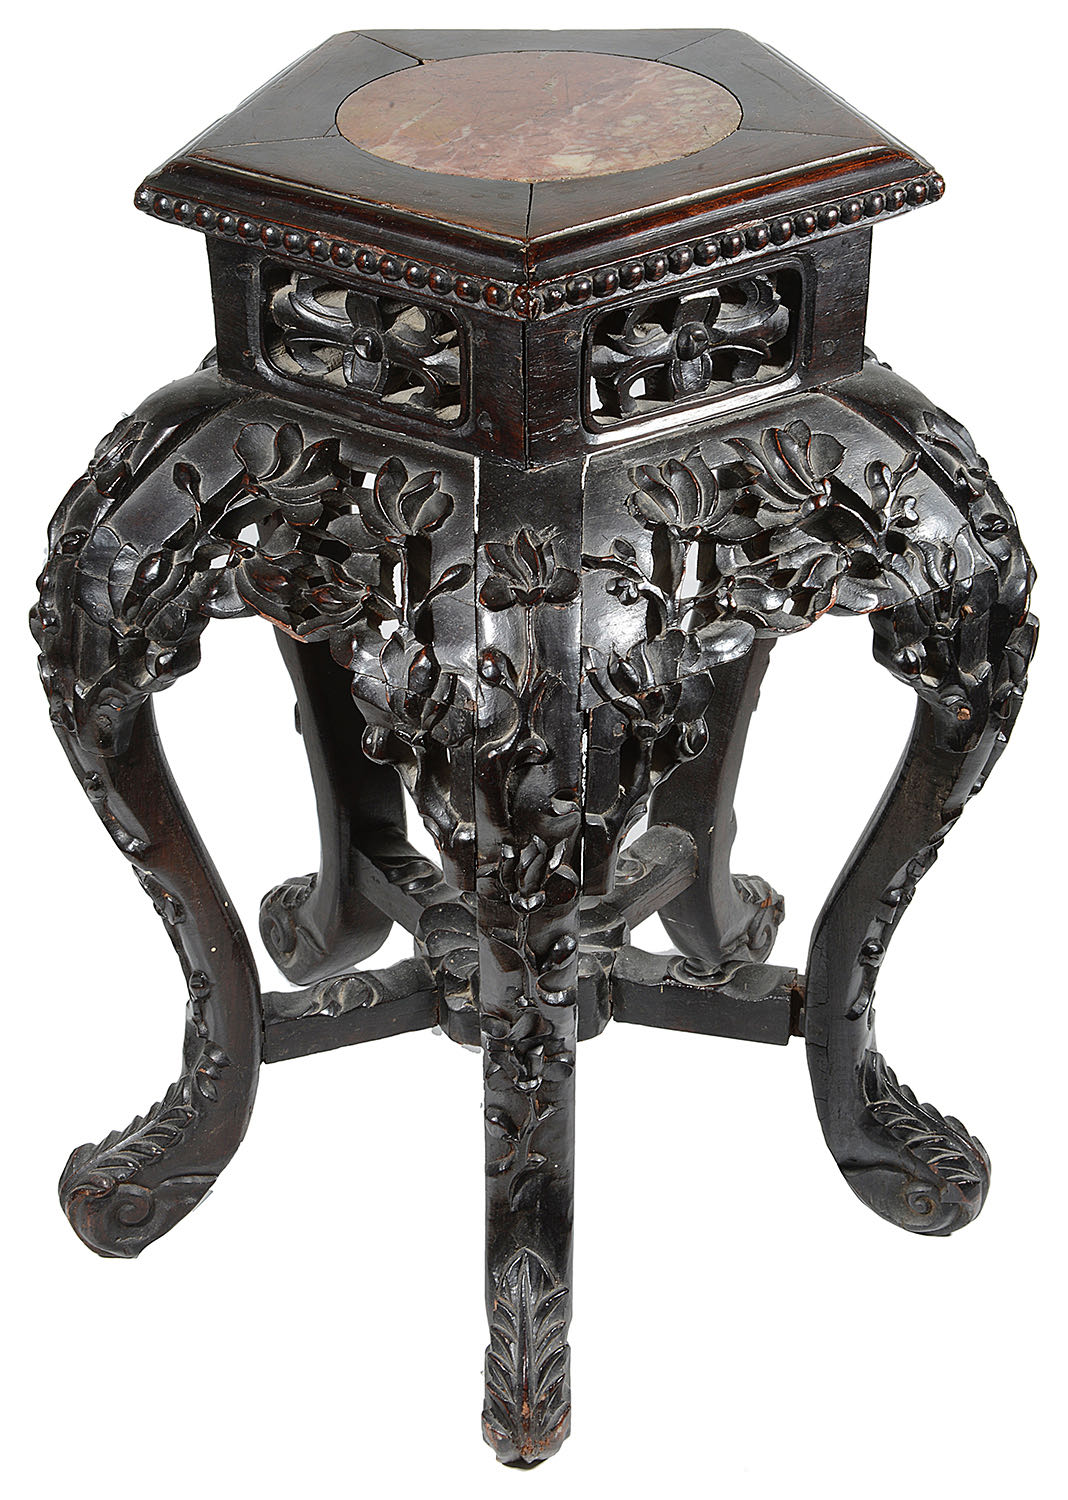 Lot 7 - A late 19th c Chinese carved hardwood low stand or occasional table